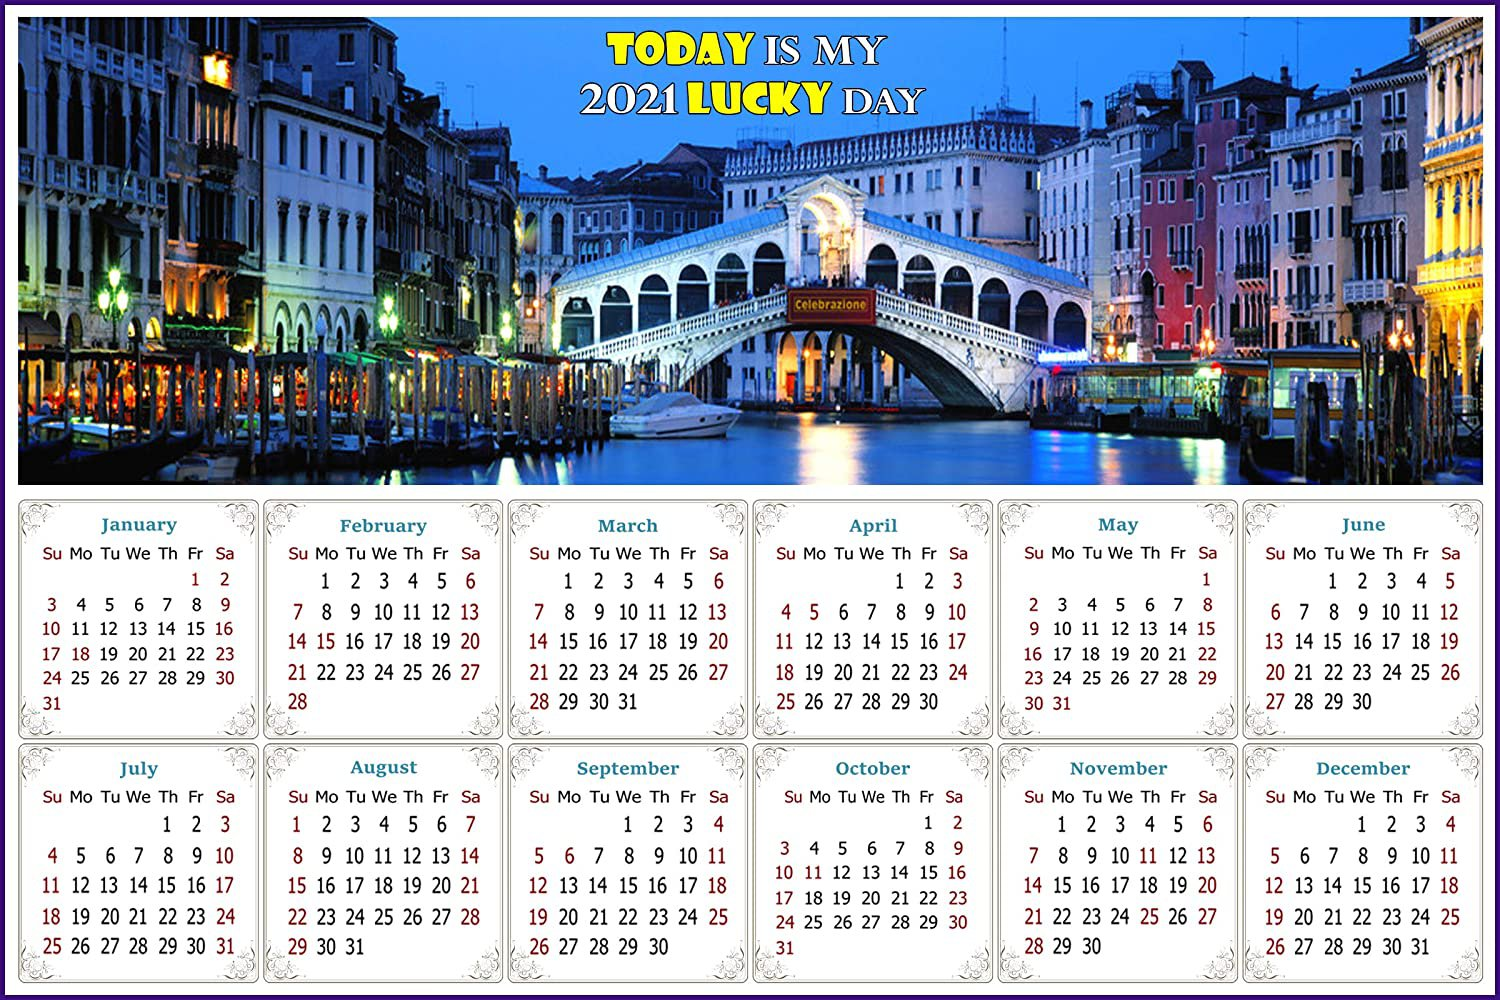 2021 Magnetic Calendar - Today is My Lucky Day - Nightlife on The Canal